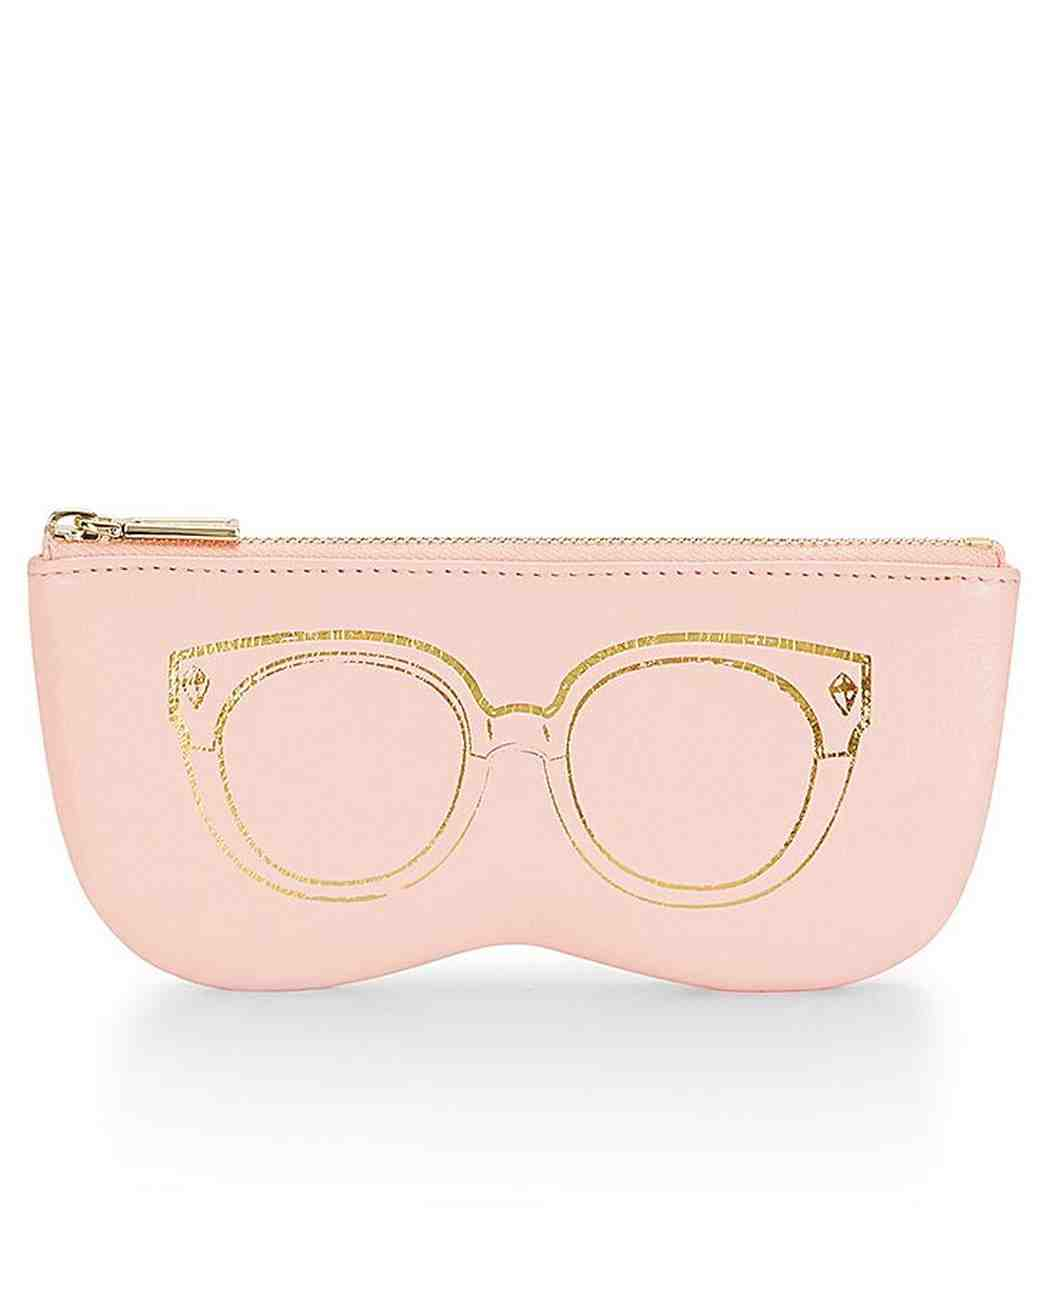 valentines-day-gifts-for-her-rebecca-minkoff-sunglasses-case-0216.jpg